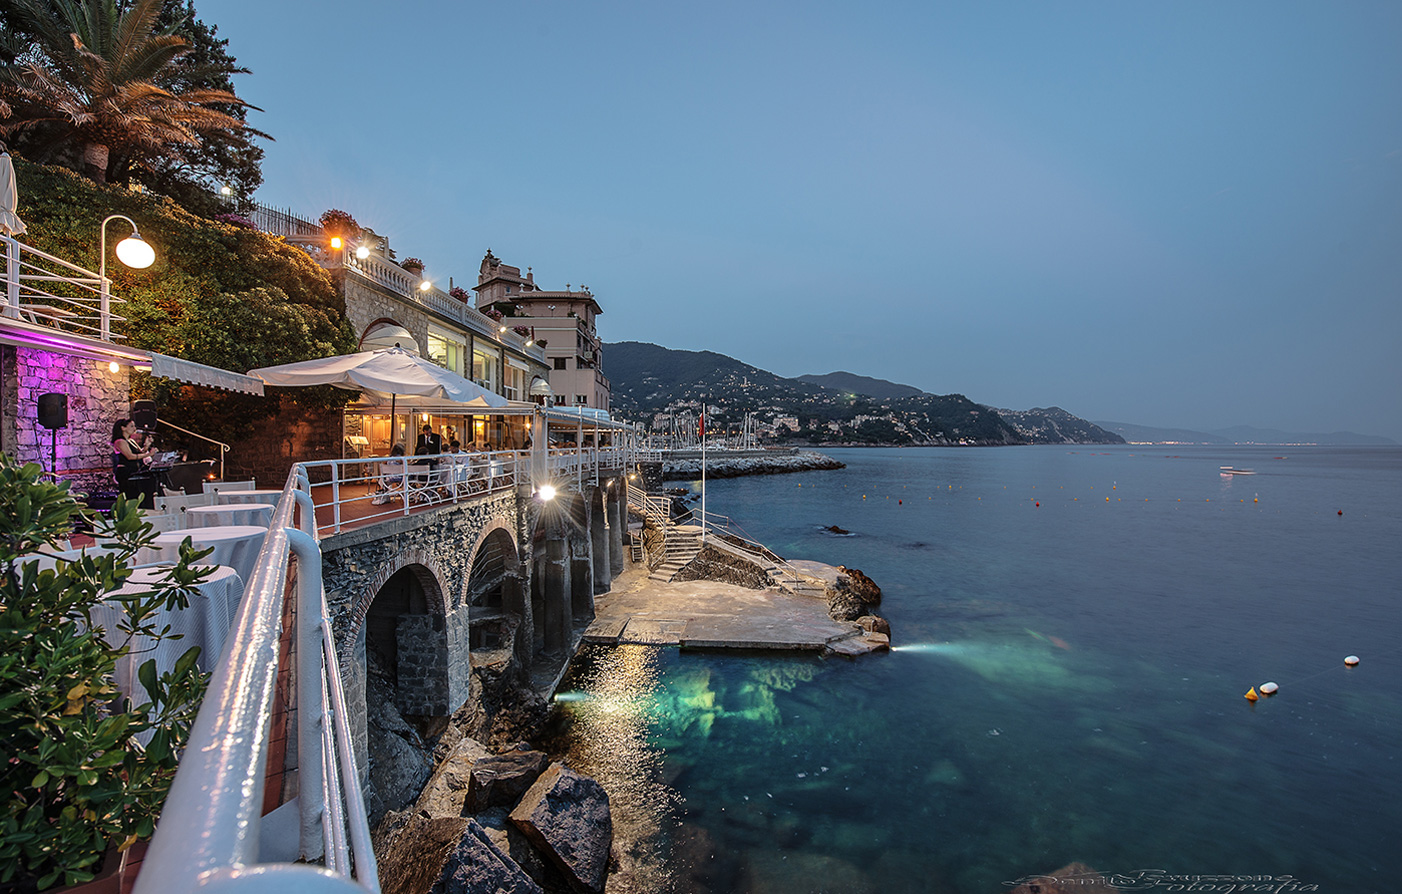 rapallo chat rooms Located in seaside in santa margherita ligure - san lorenzo della costa ( genoa), offers  the perfect place to chat with other guests, enjoy a glass of wine  or browse one of the  some rooms may be adjoined to accommodate family  groups.